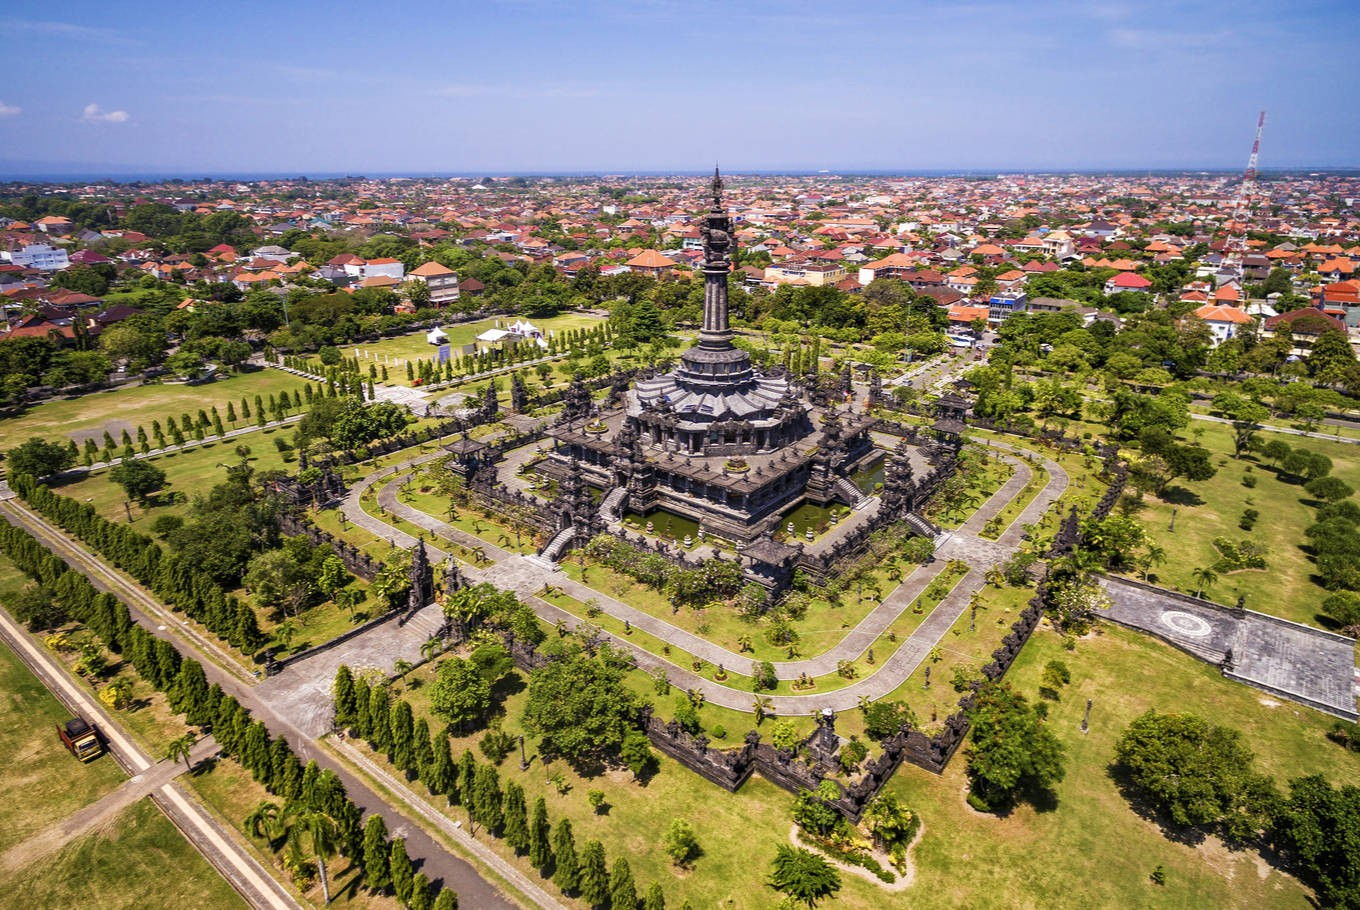 Bali governor issues statement for tourism industry players in Bali